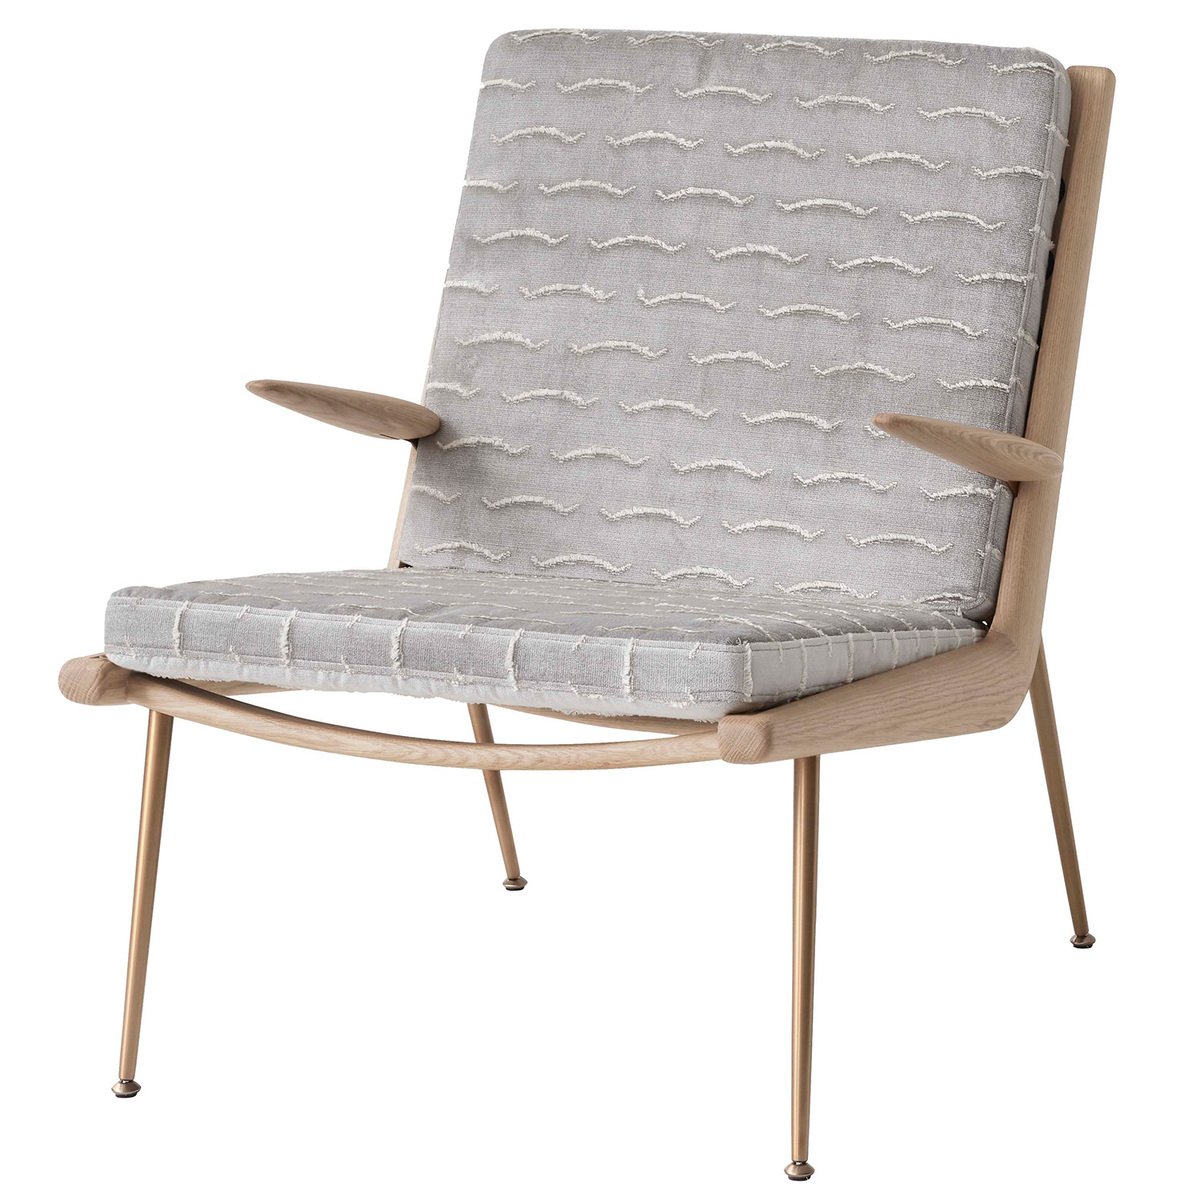 &Tradition Boomerang HM2 lounge chair, Nouvelles Vagues - white oiled oak from &Tradition